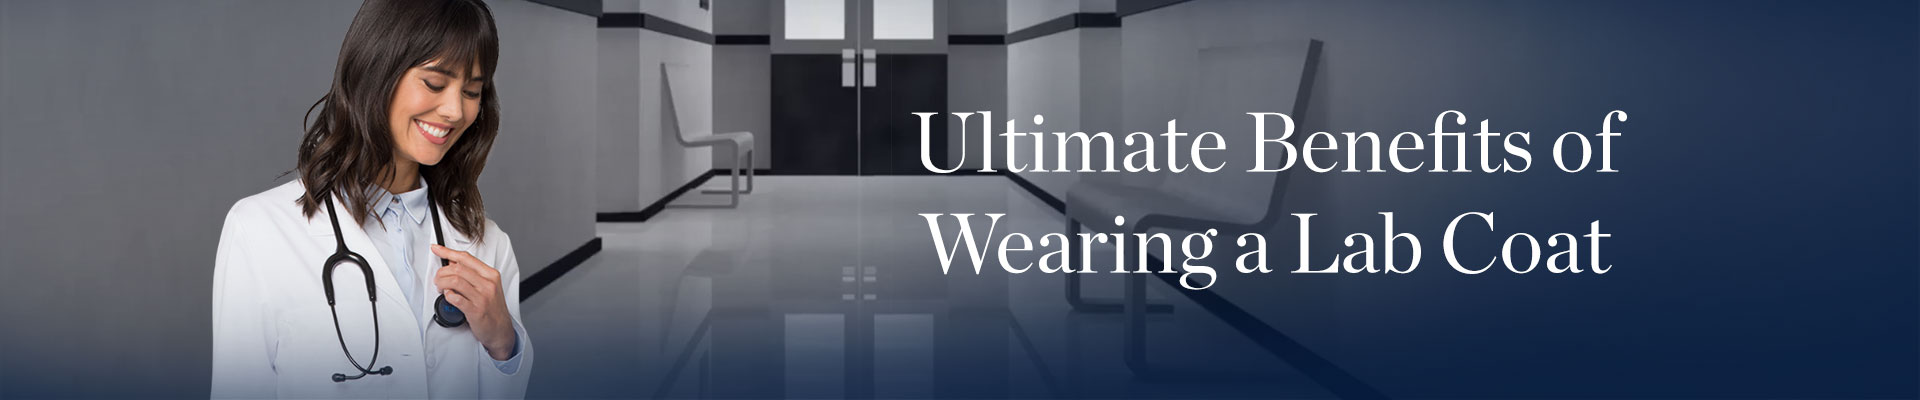 Ultimate Benefits of Wearing a Lab Coat